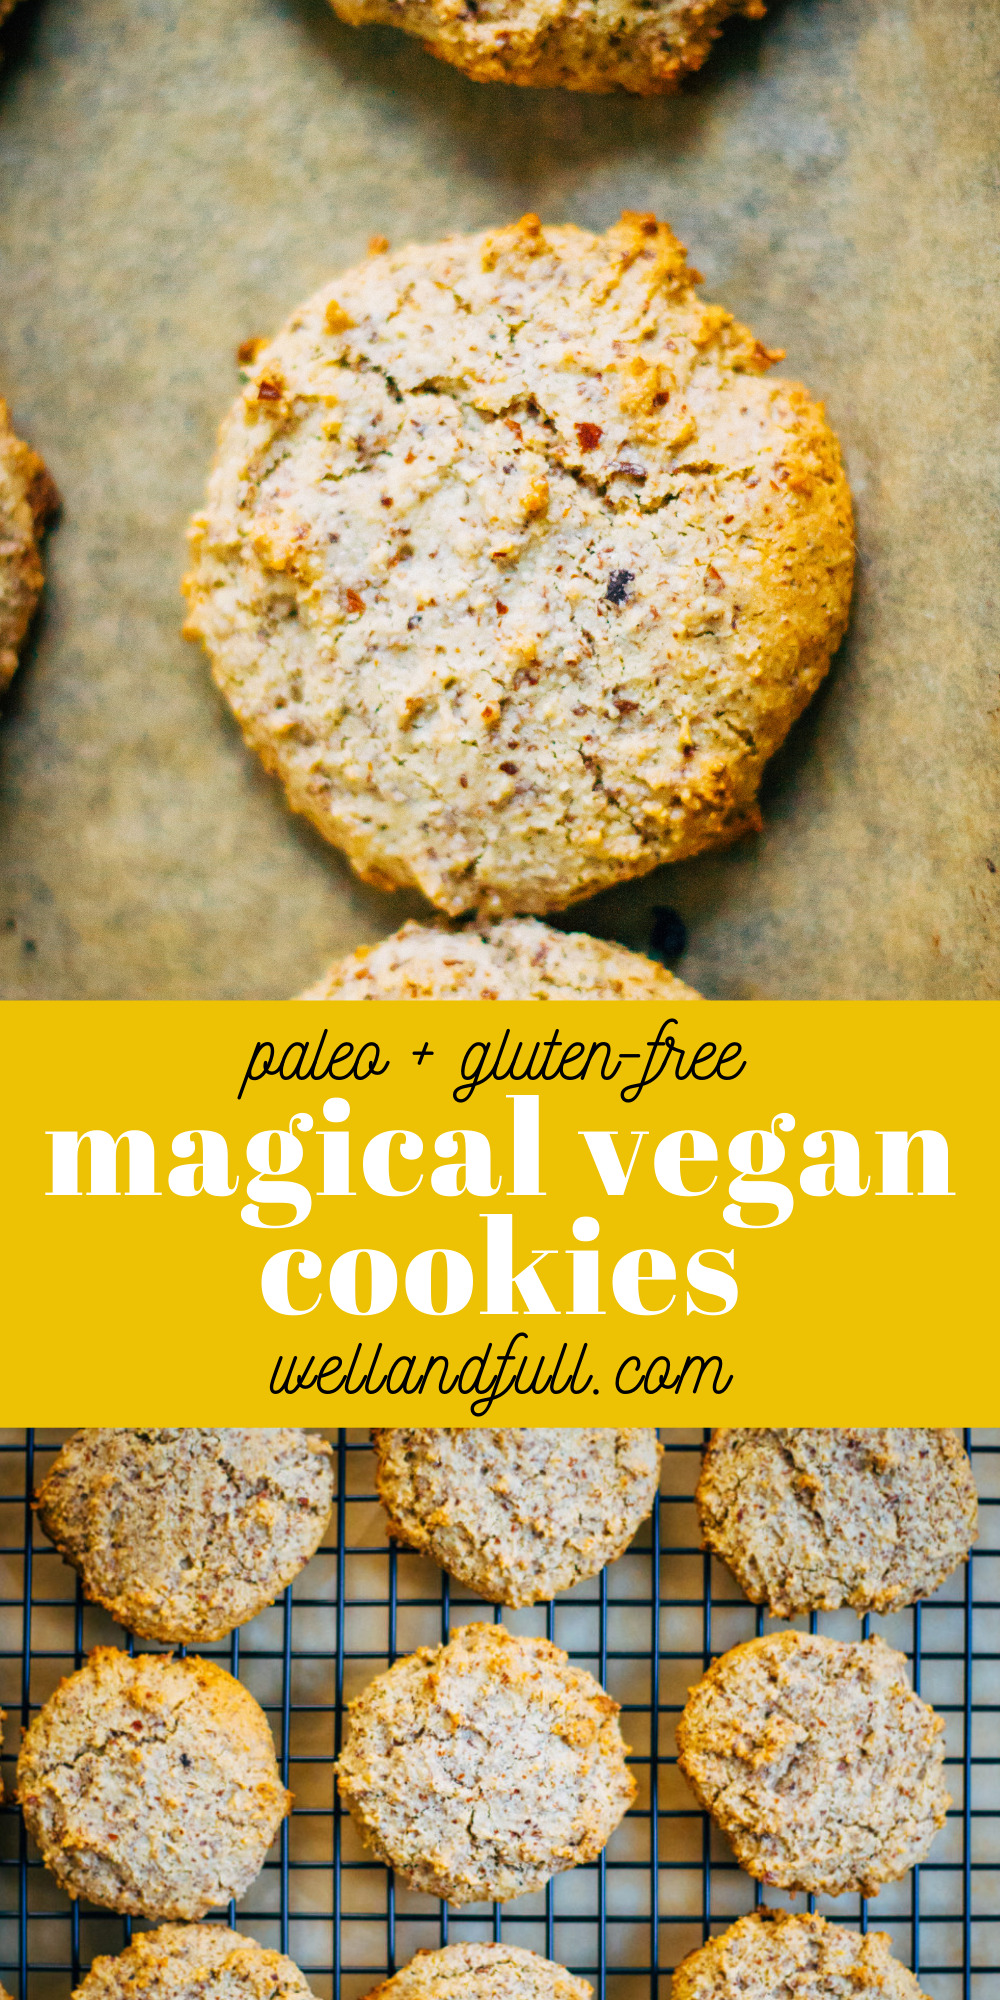 Magical Vegan Cookies